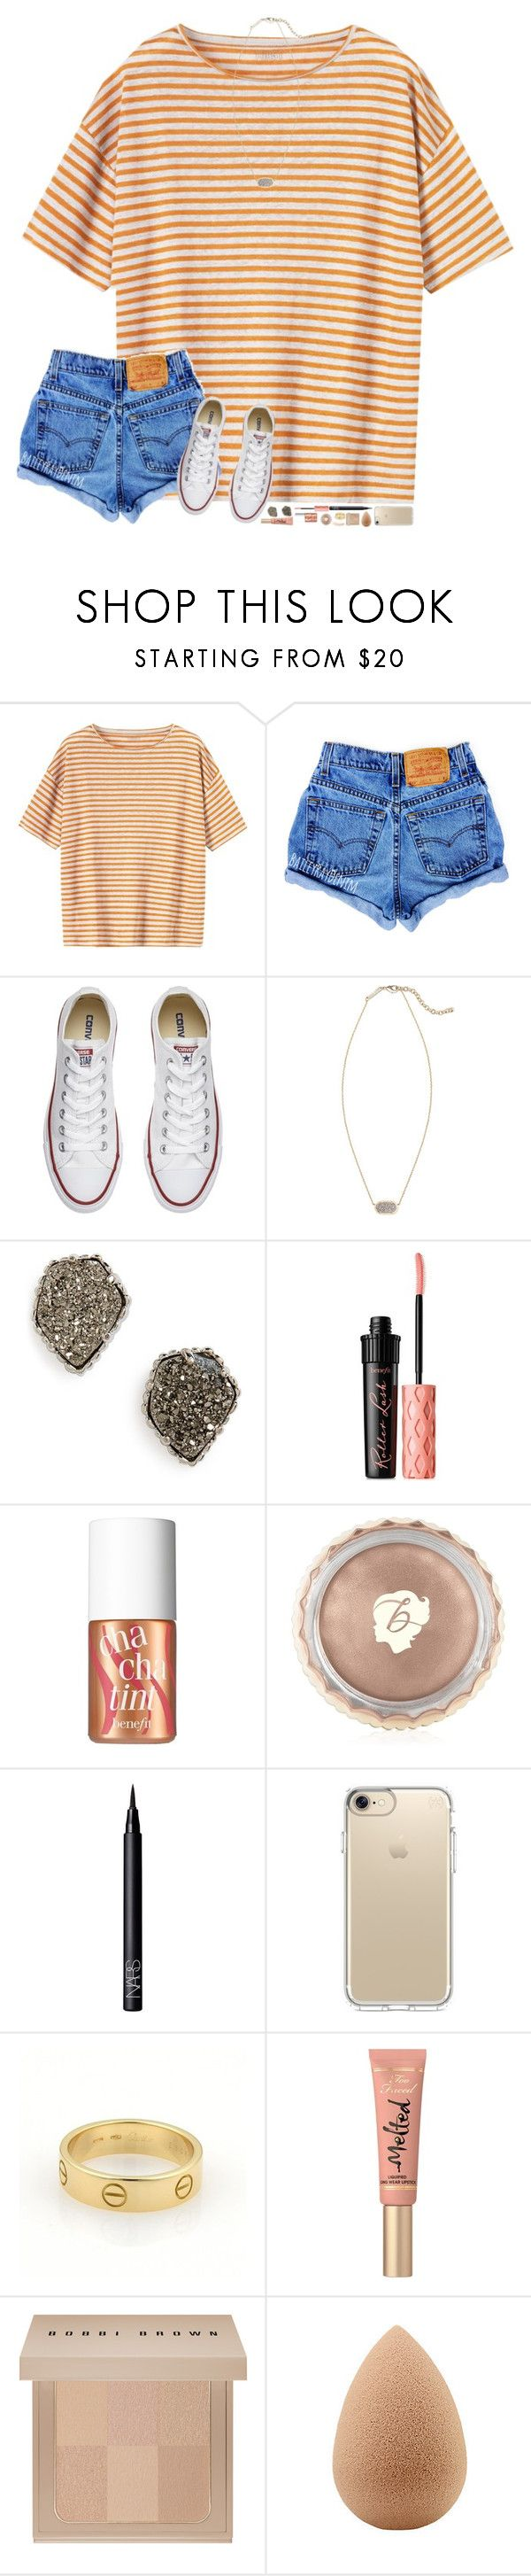 """""""rtd for some info on upcoming weeeeeeks ‼️"""" by hopemarlee ❤ liked on Polyvore featuring Toast, Converse, Kendra Scott, Benefit, NARS Cosmetics, Speck, Cartier, Too Faced Cosmetics, Bobbi Brown Cosmetics and beautyblender"""